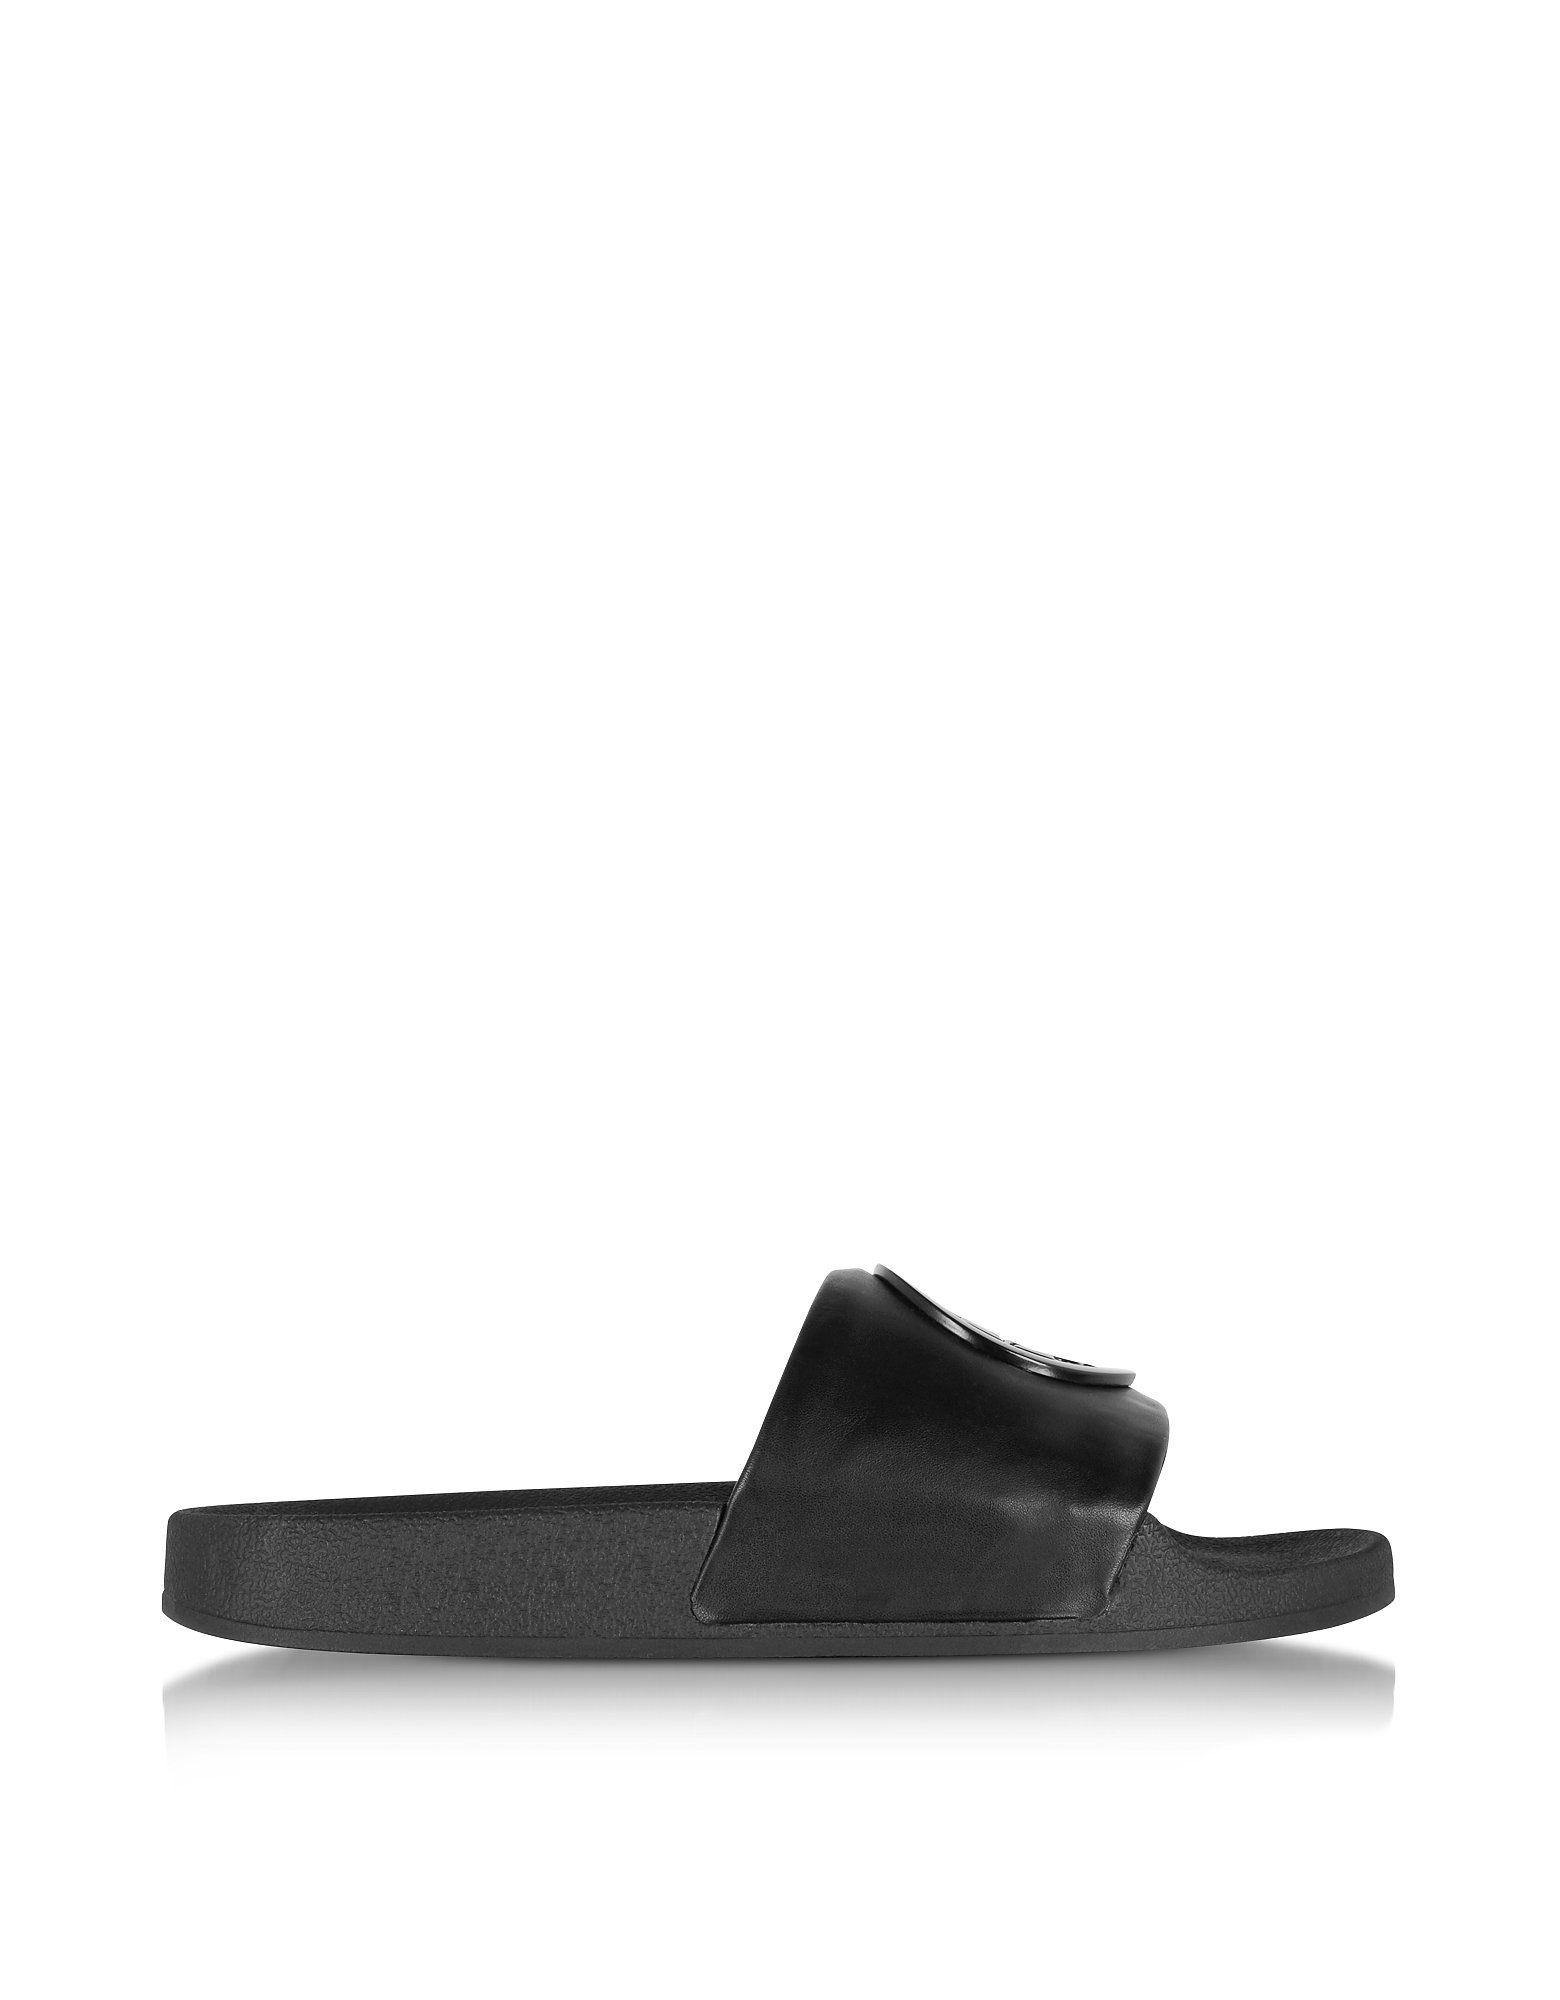 Tory Burch Shoes, Black Leather Lina Slide Sandals